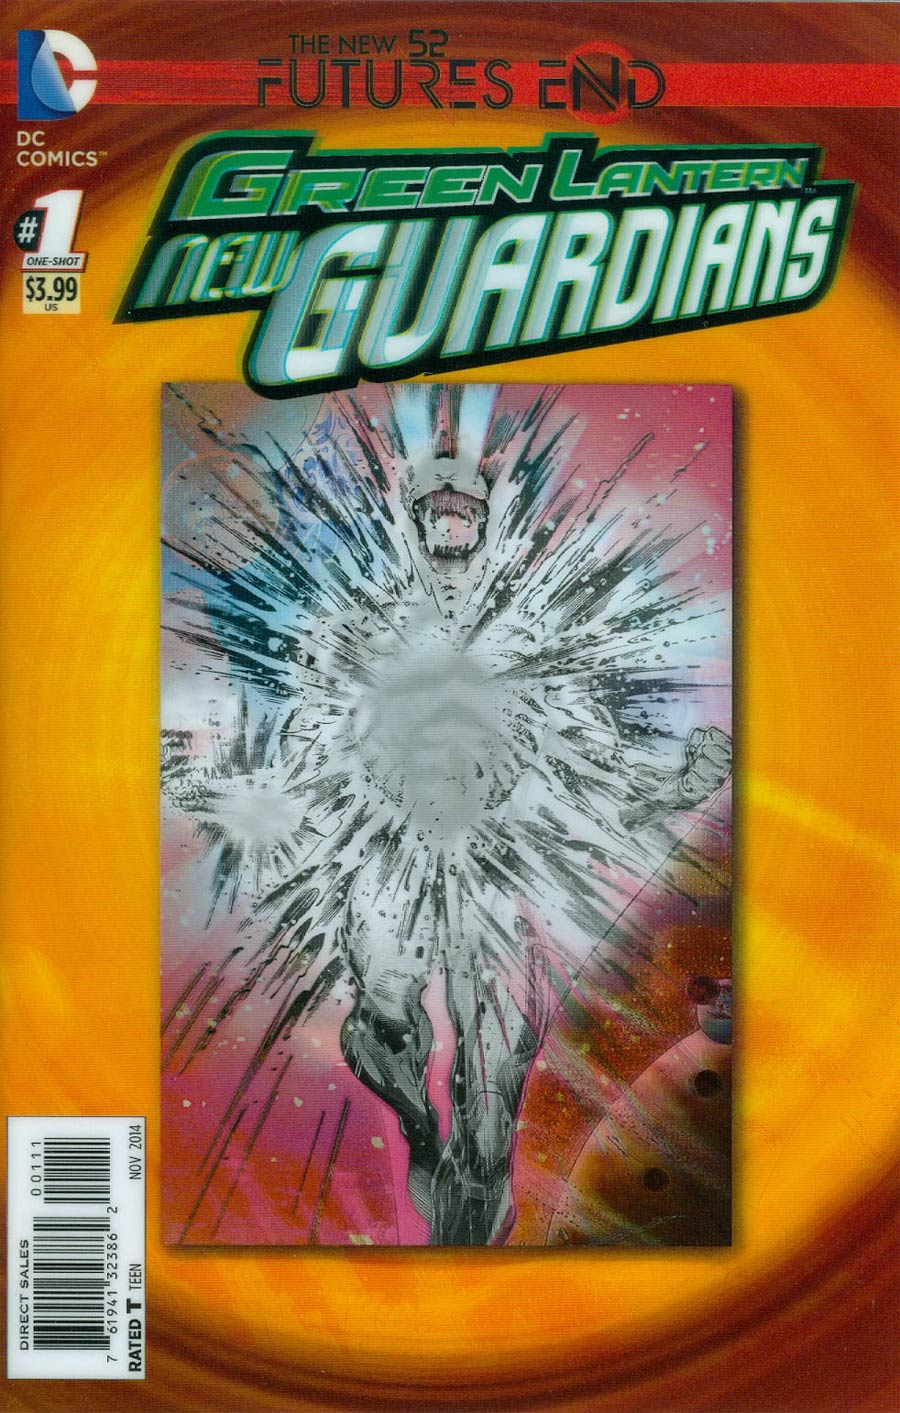 Green Lantern New Guardians Futures End #1 Cover A 3D Motion Cover